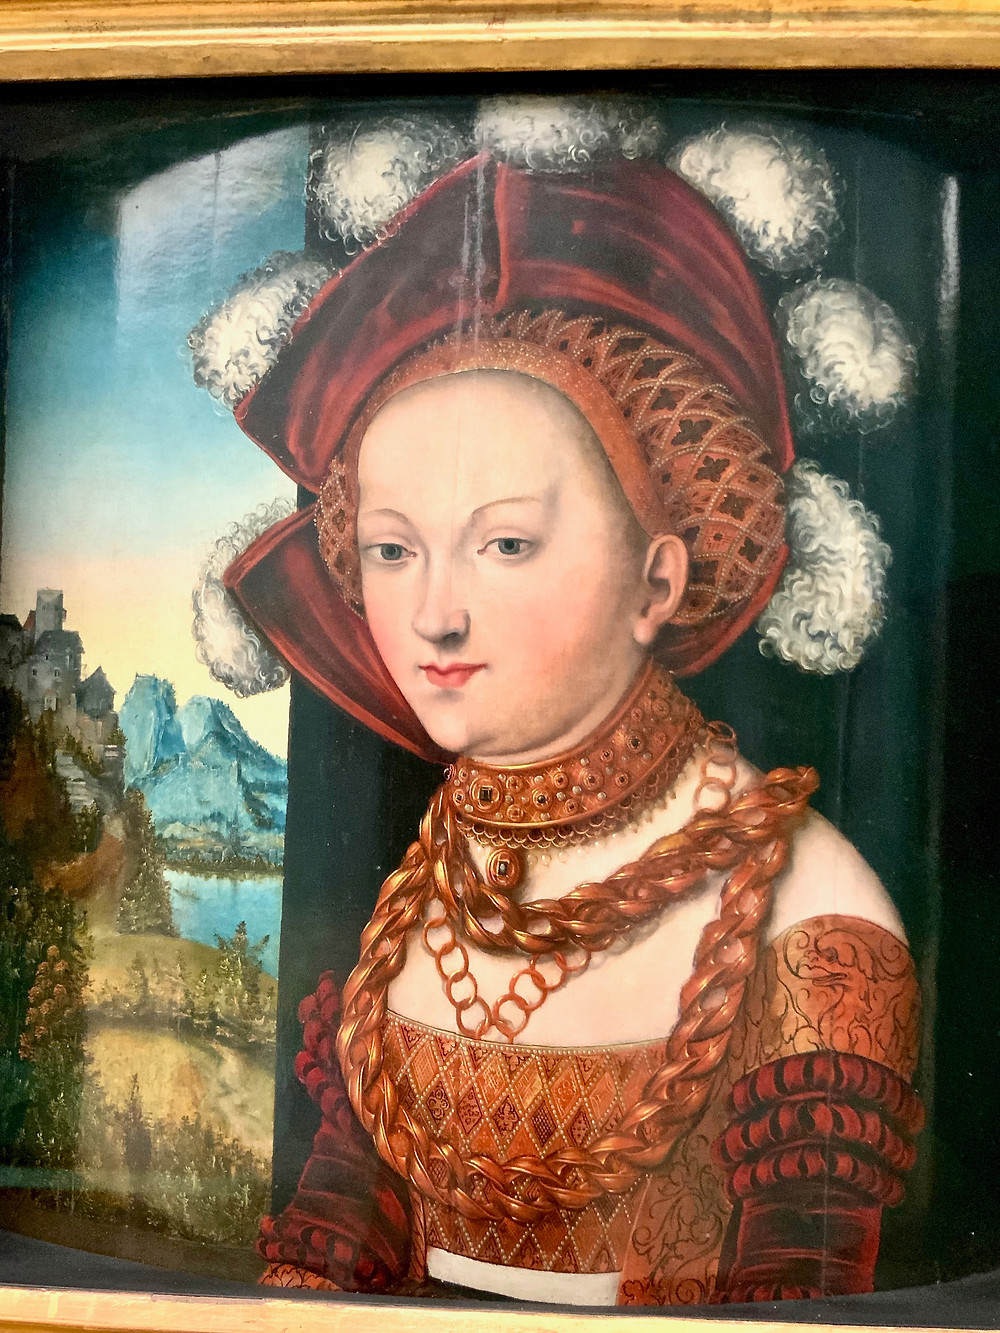 An icon of German beauty. She was originally depicted holding the head of John the Baptist. But that part of the painting was sawn off as too repulsive.